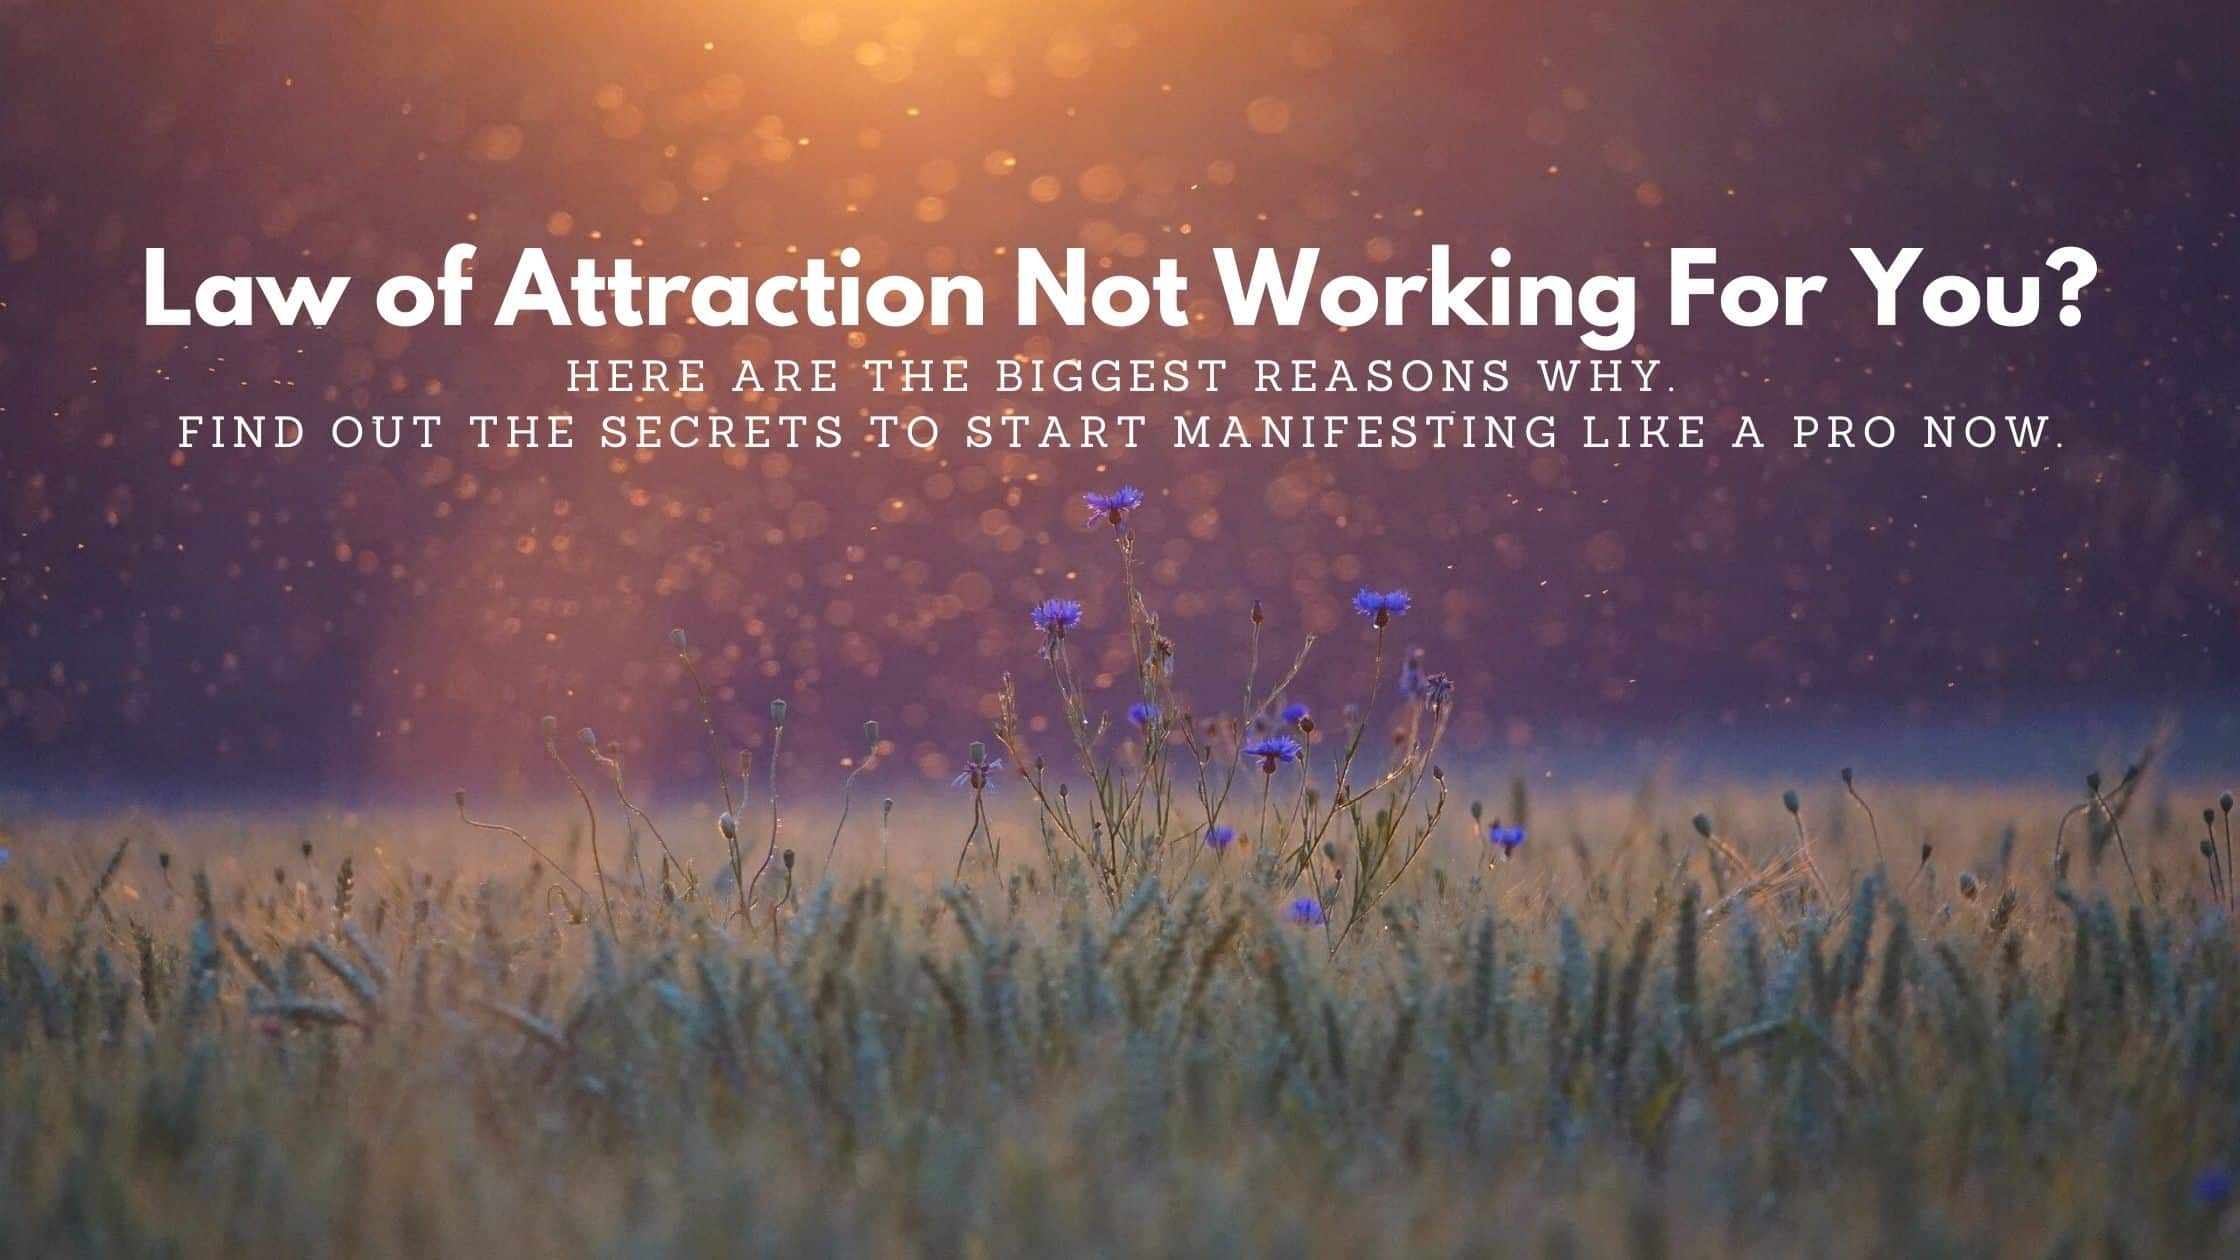 law of attraction not working for you? Find out why here.